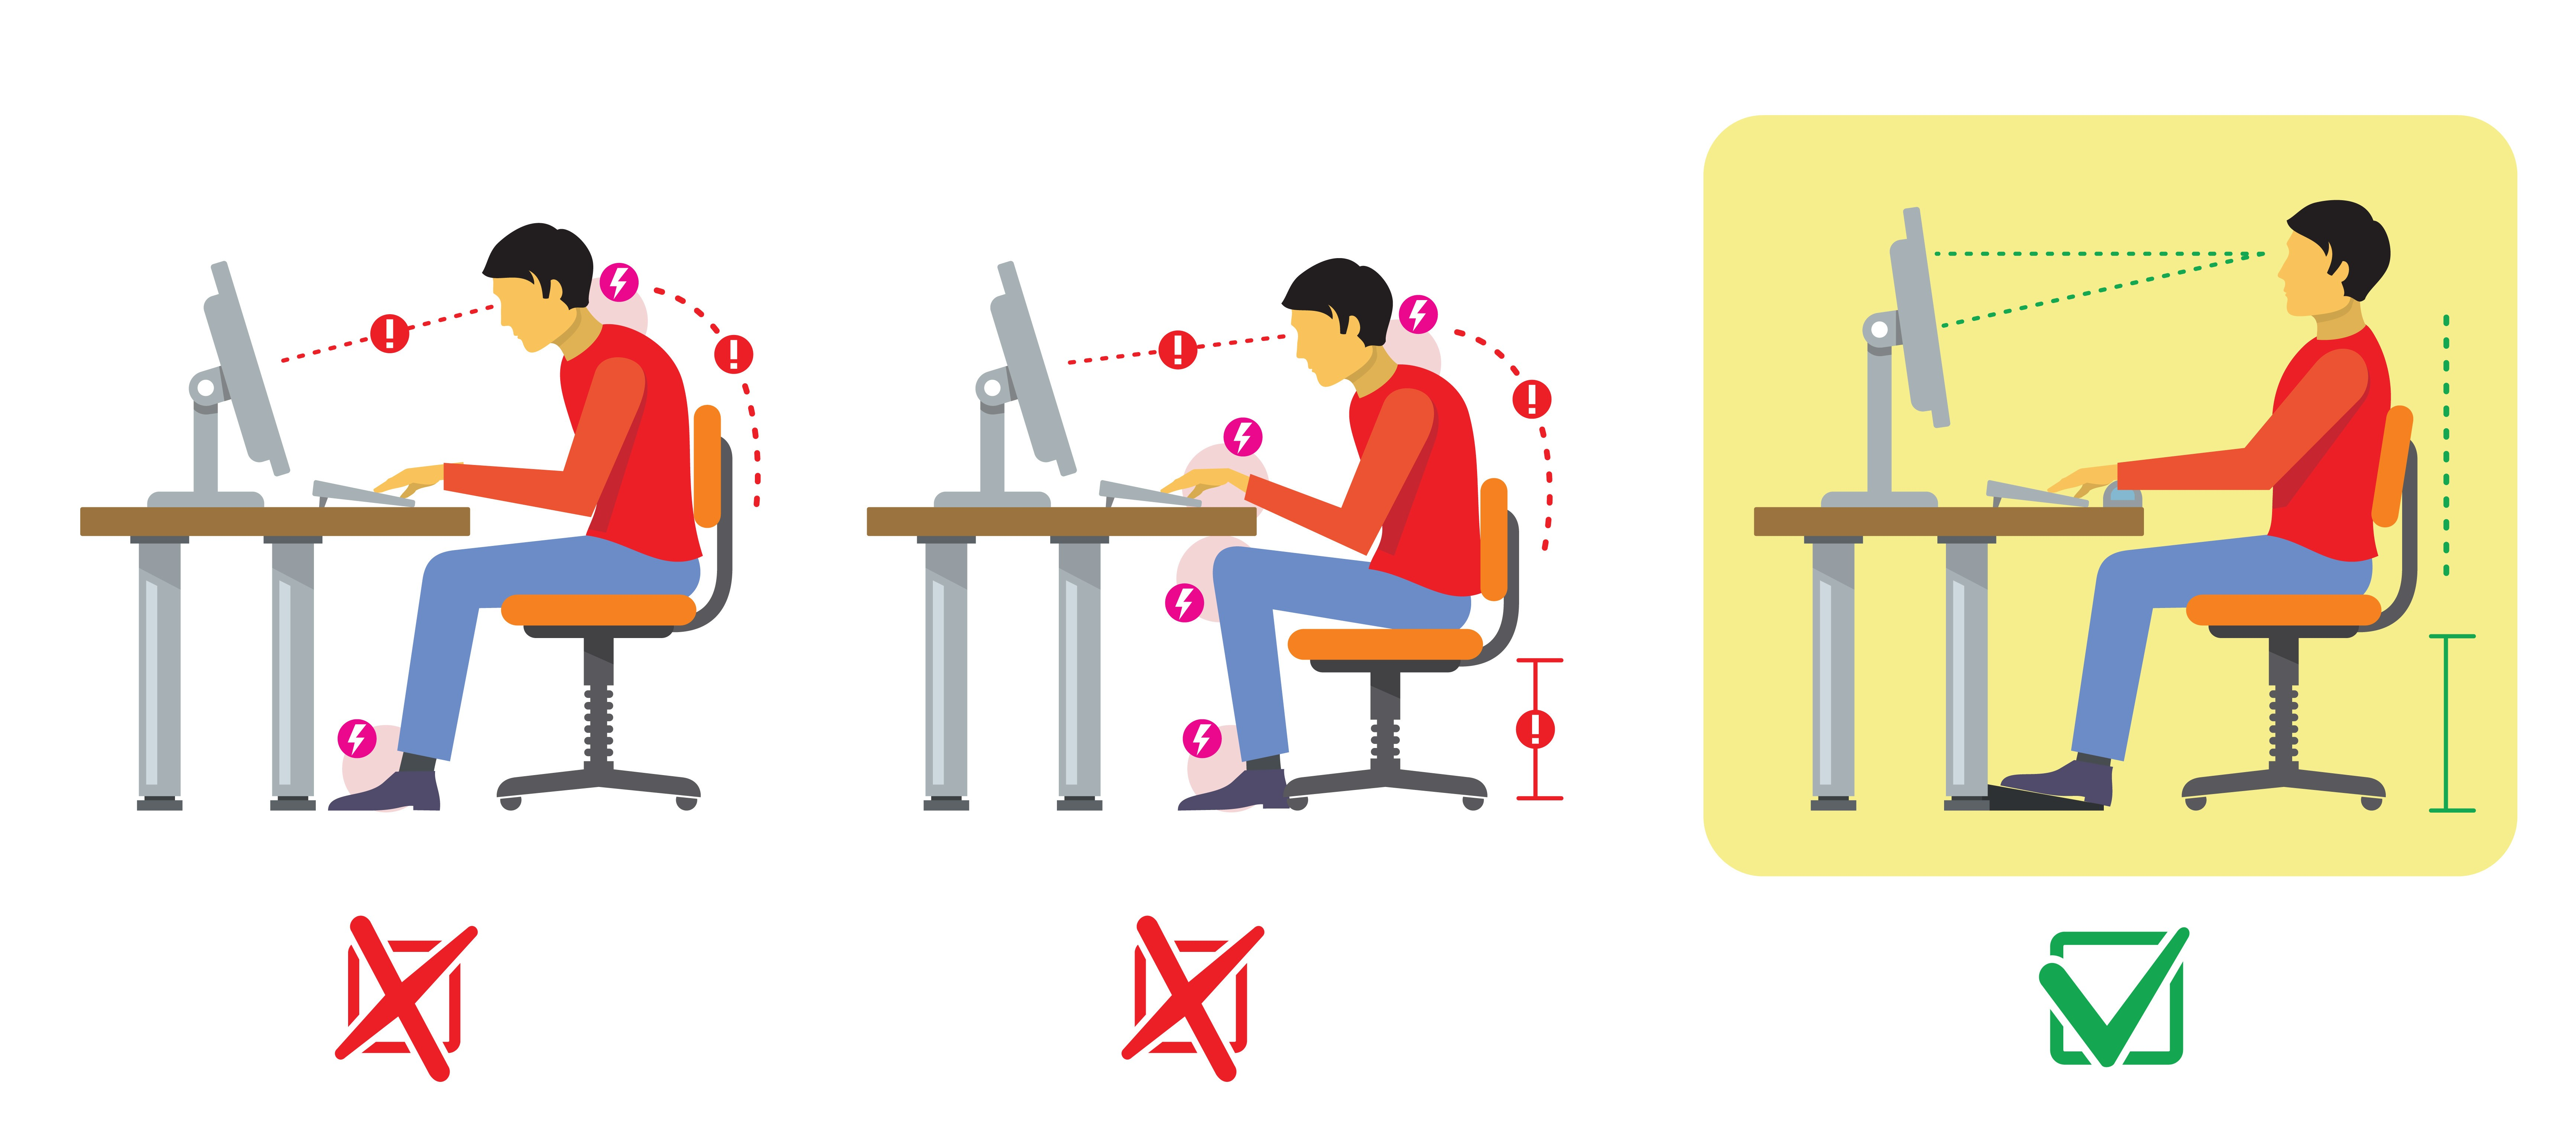 Illustration of man slumped over at computer desk